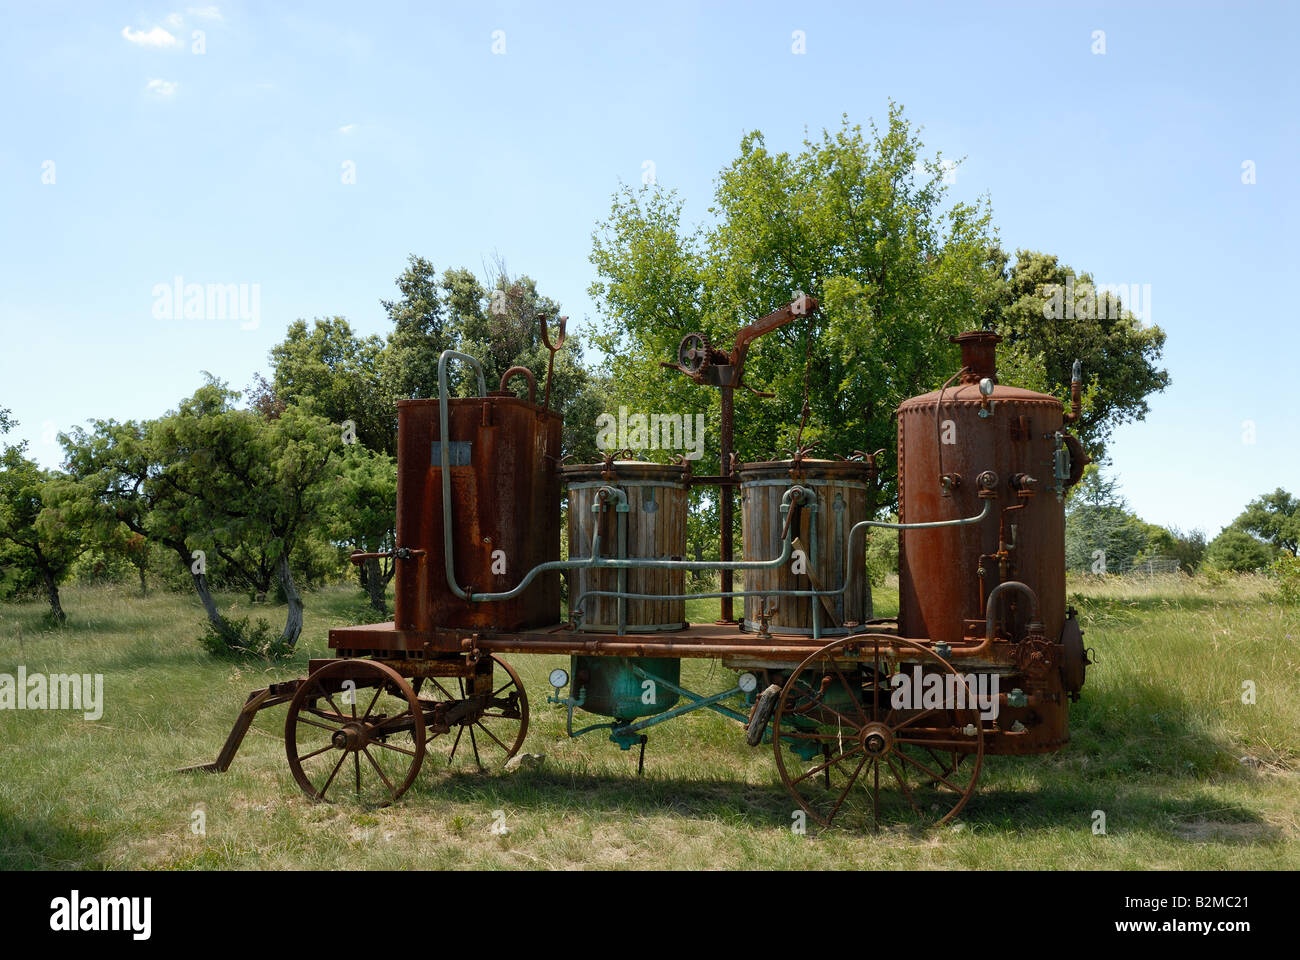 Old distill machine and lavender field in the Provence, France Stock Photo